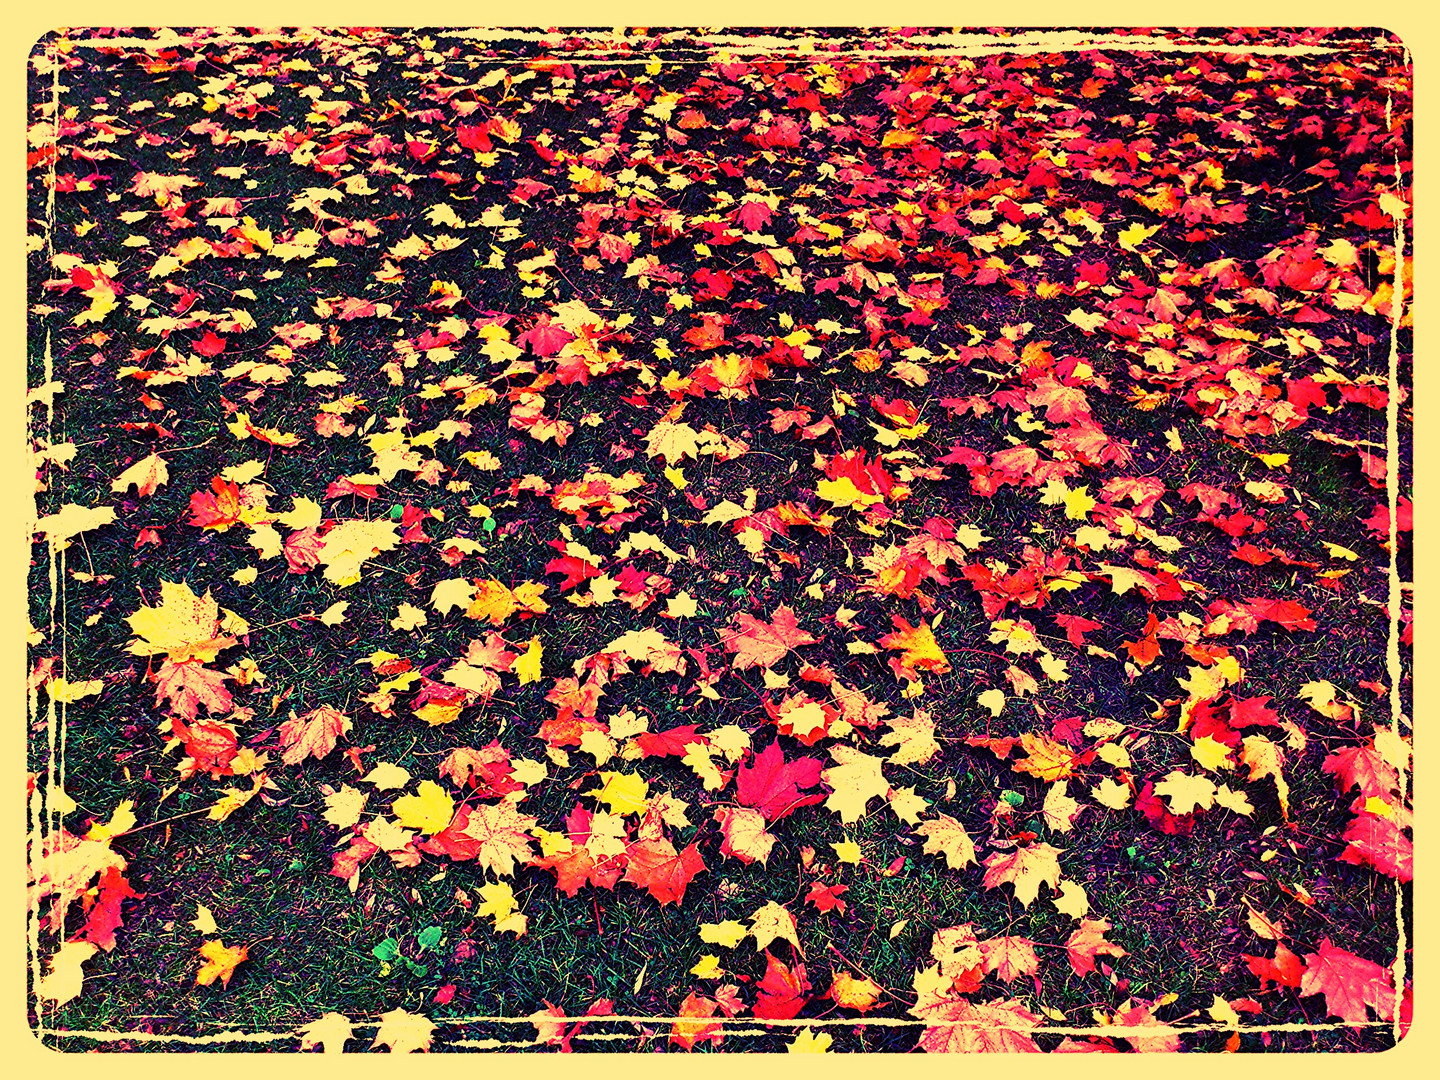 colored leafs